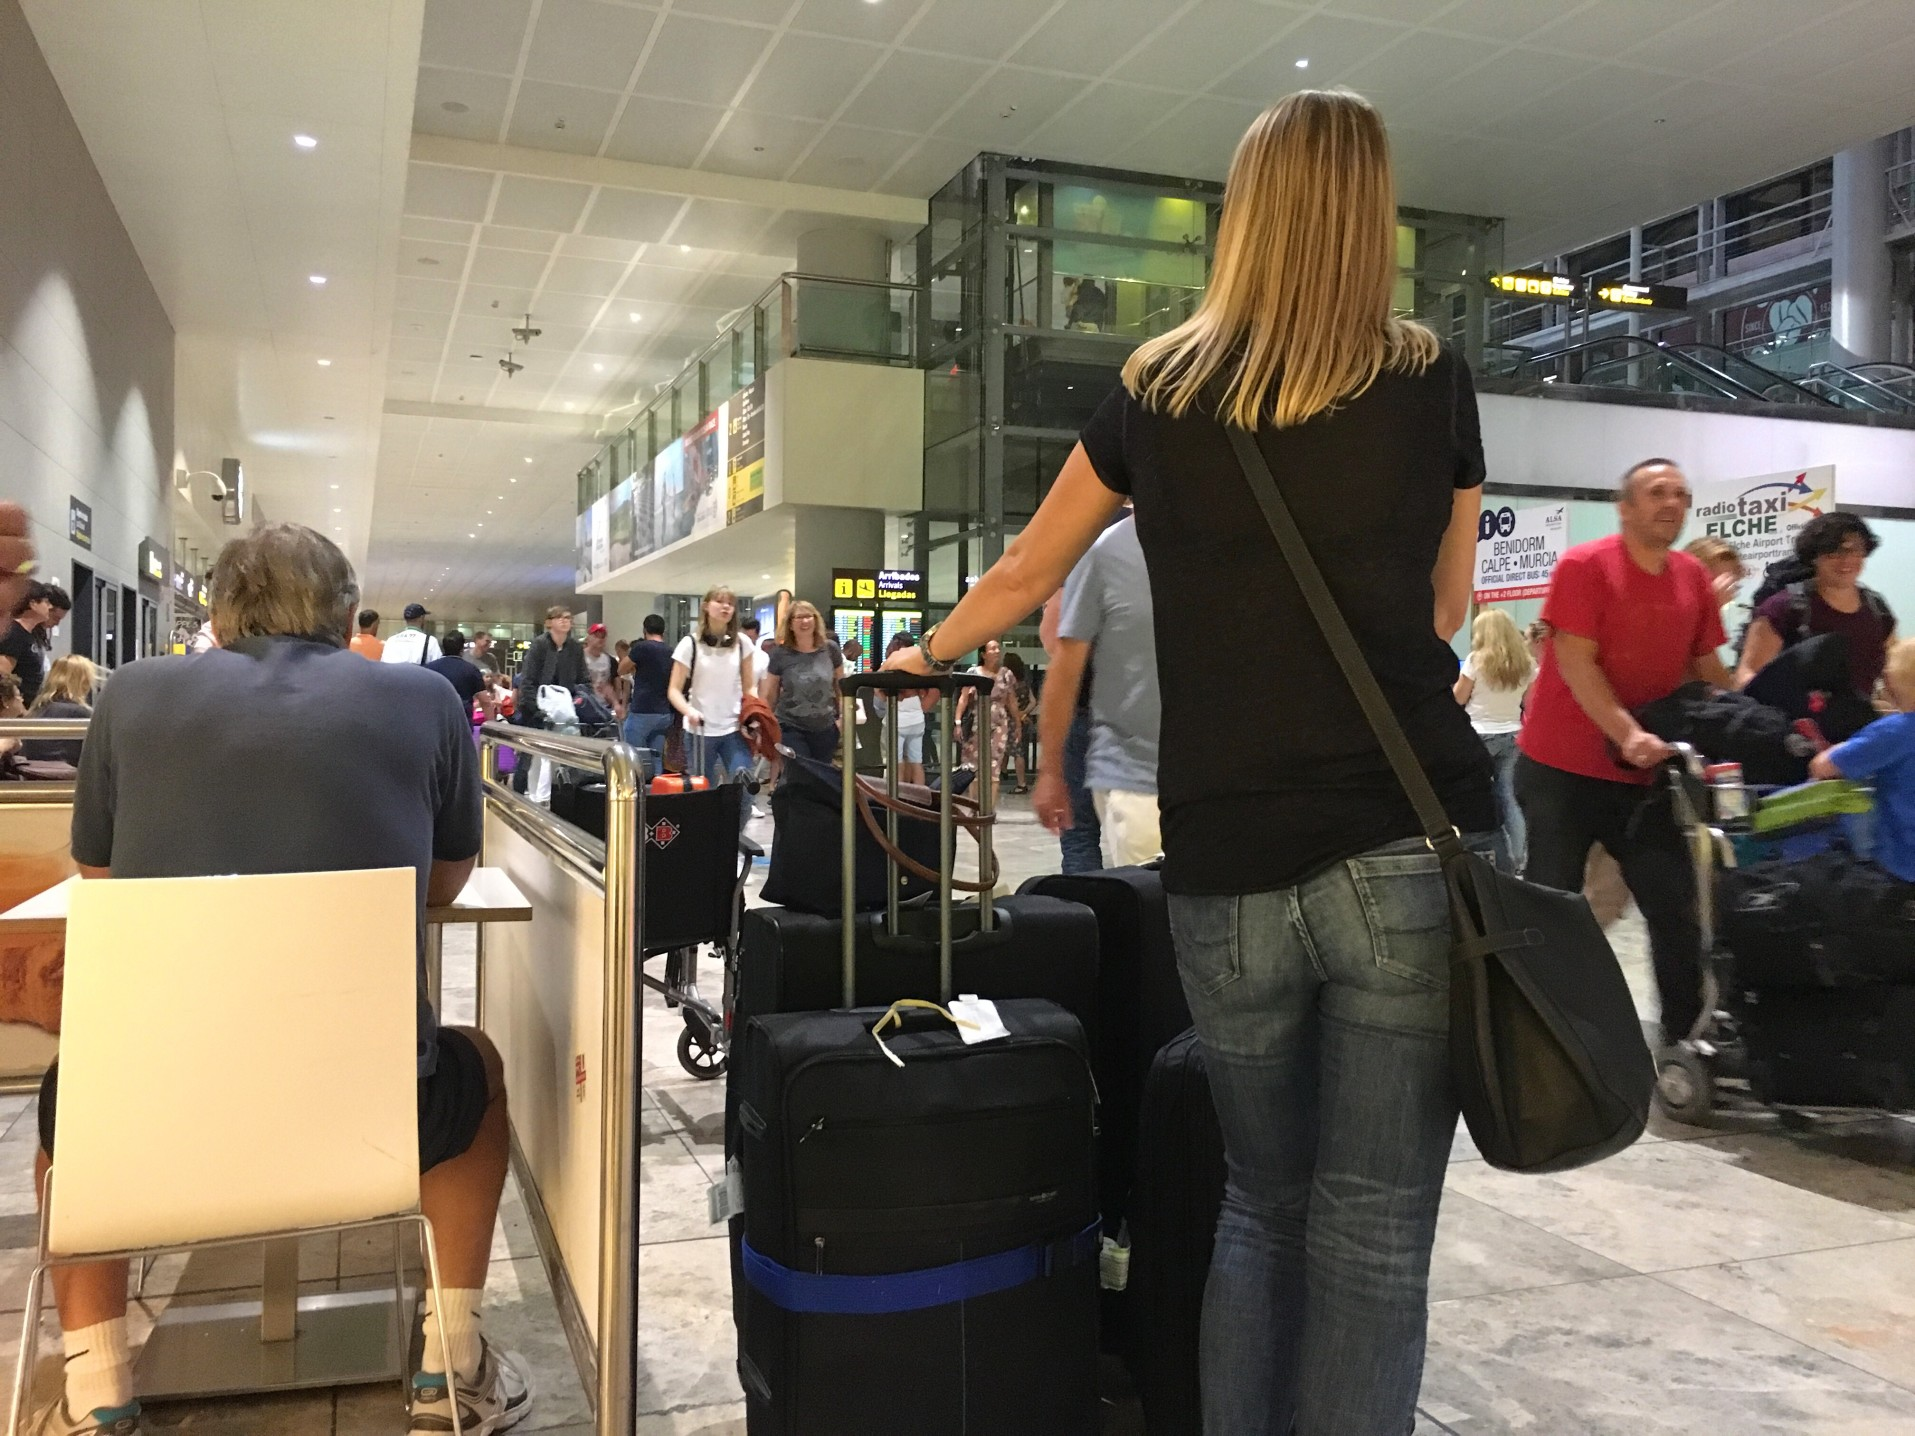 woman-waiting-with-wheelie-suitcases-in-the-arrivals-area-of-el-altet-airport-alicante-spain_t20_nojwlA